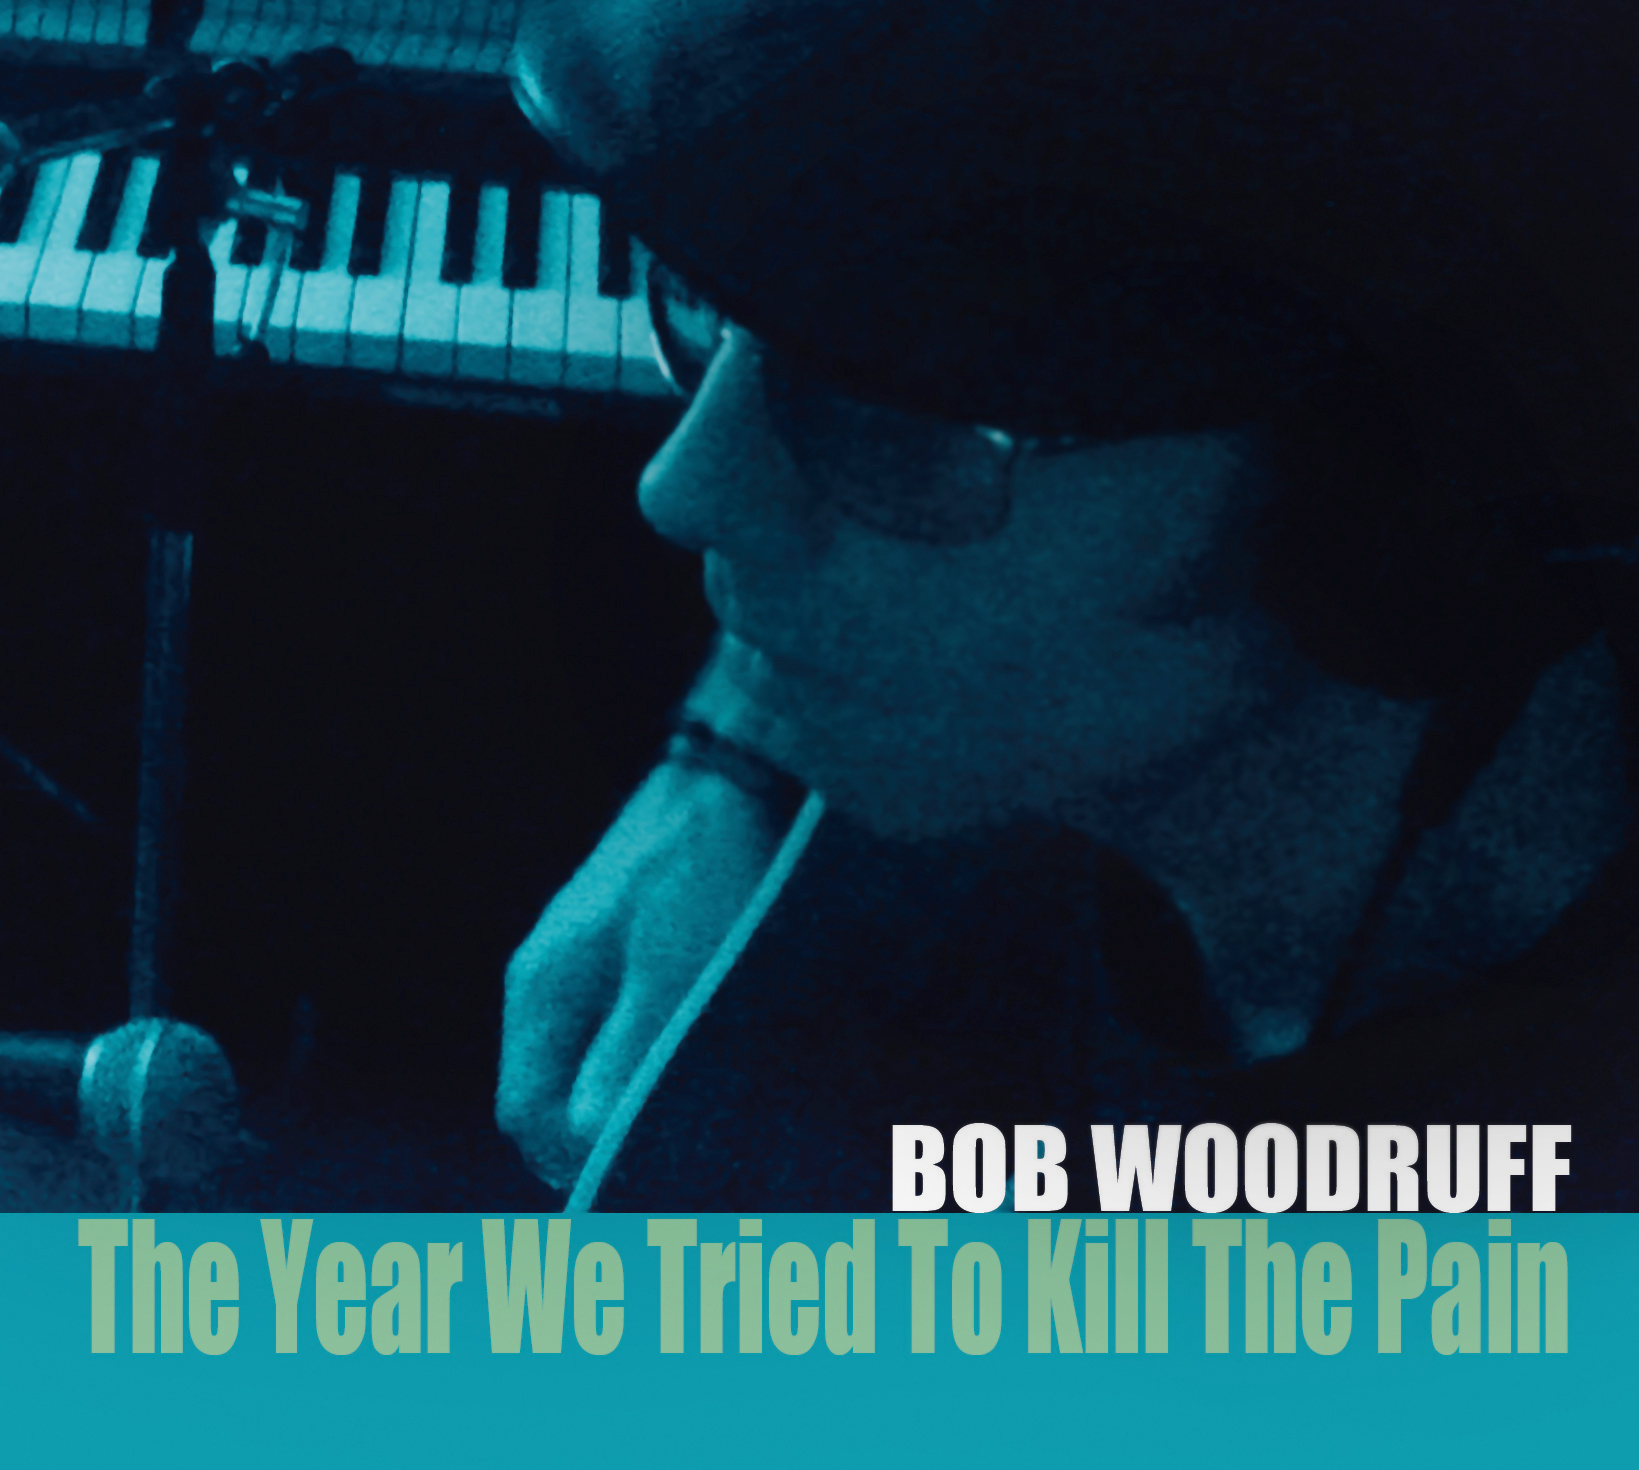 Bob Woodruff  The Year We Tried To Kill The Pain COVER 2.jpg